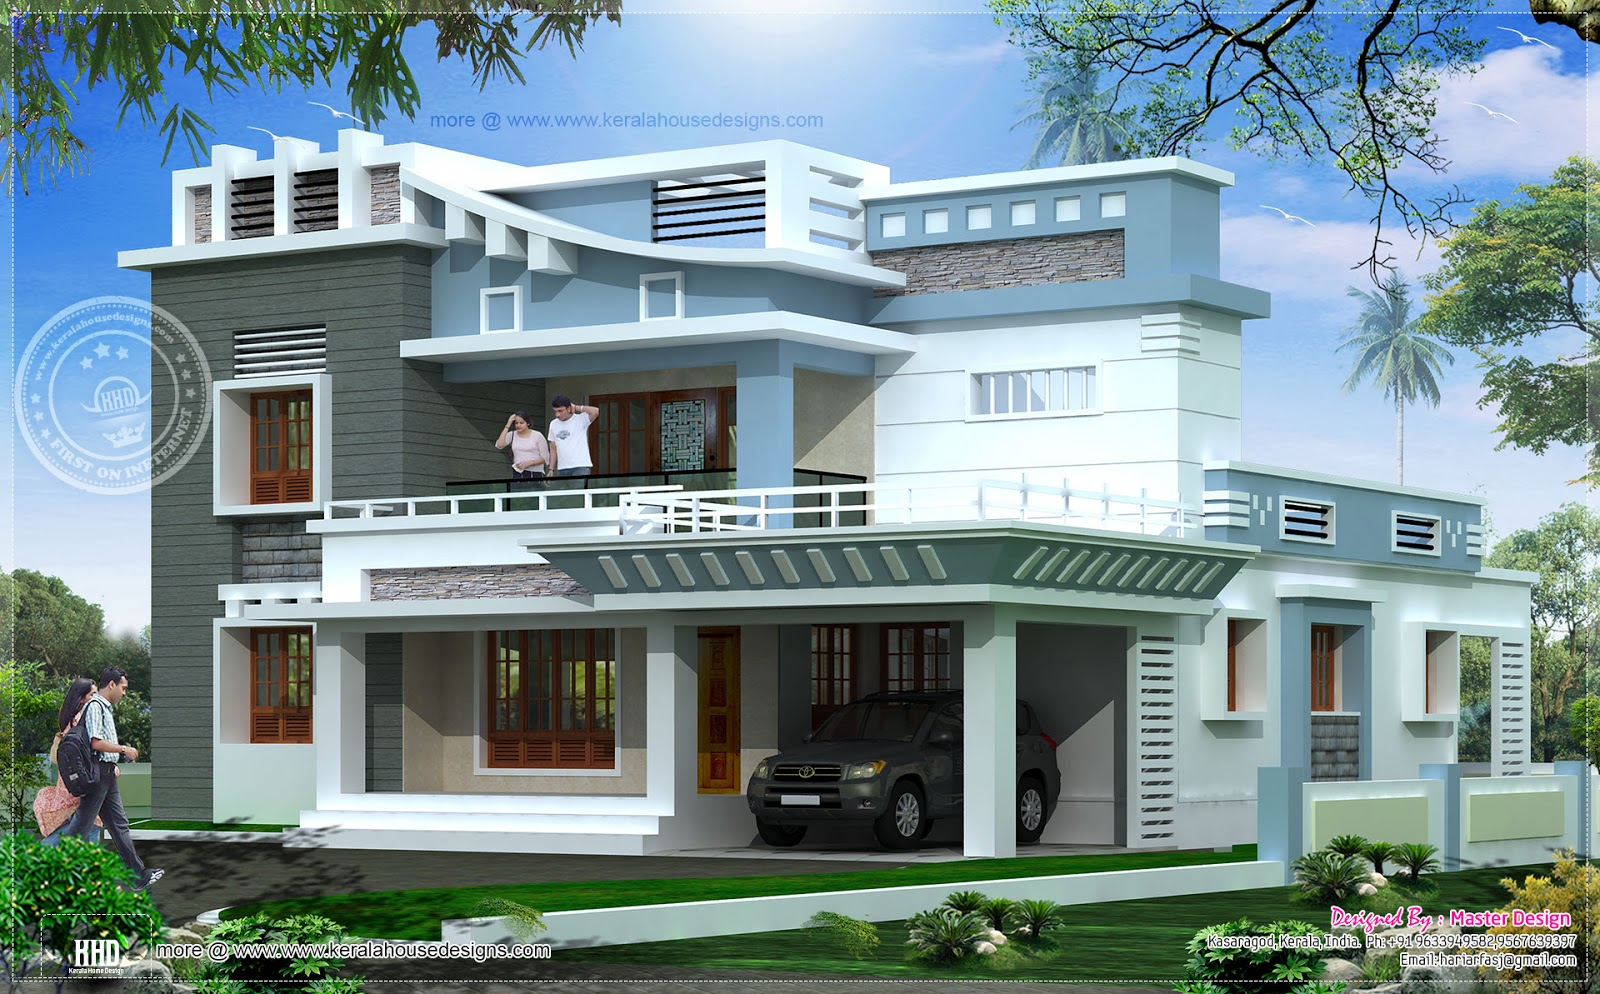 2547 square feet exterior home elevation house design plans for Home exterior design photos